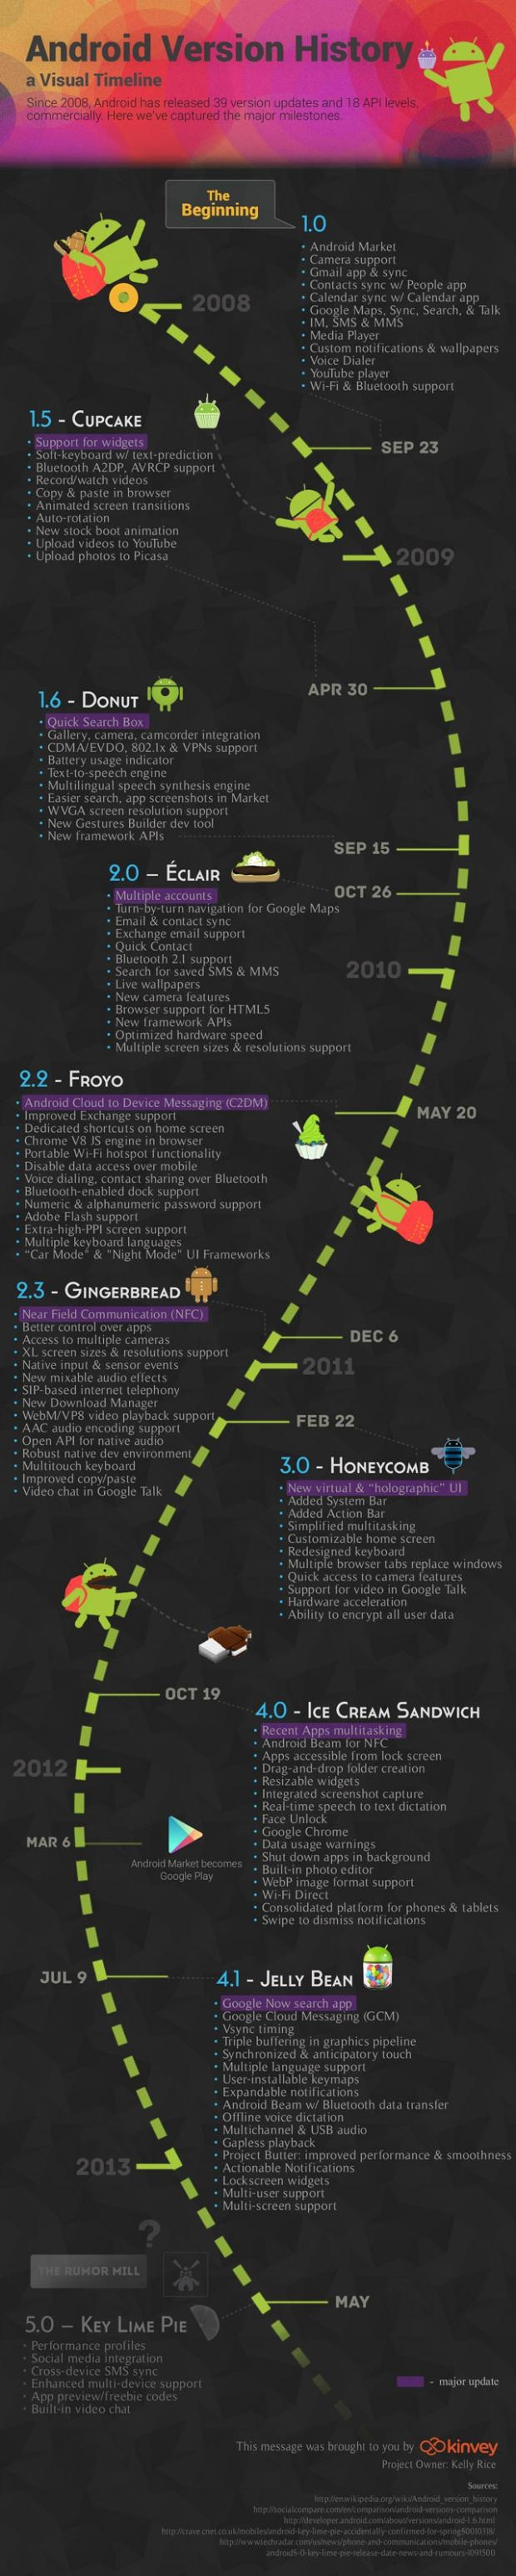 #infographic. Android version history.